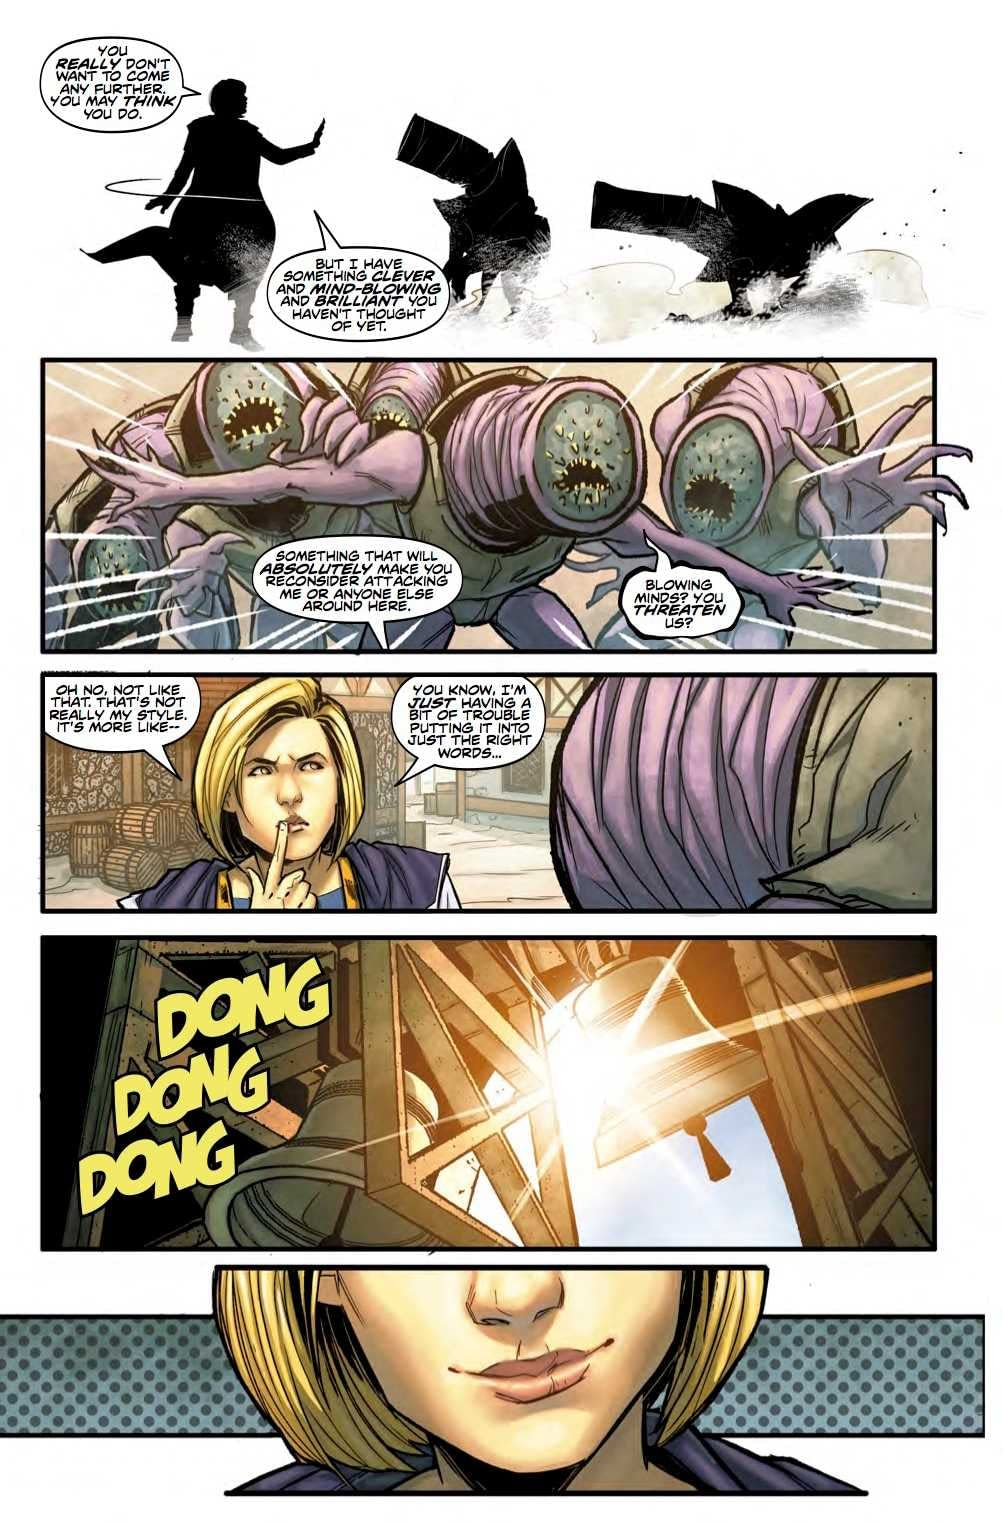 The Doctor is Still Winging it in Next Week's Doctor Who #6